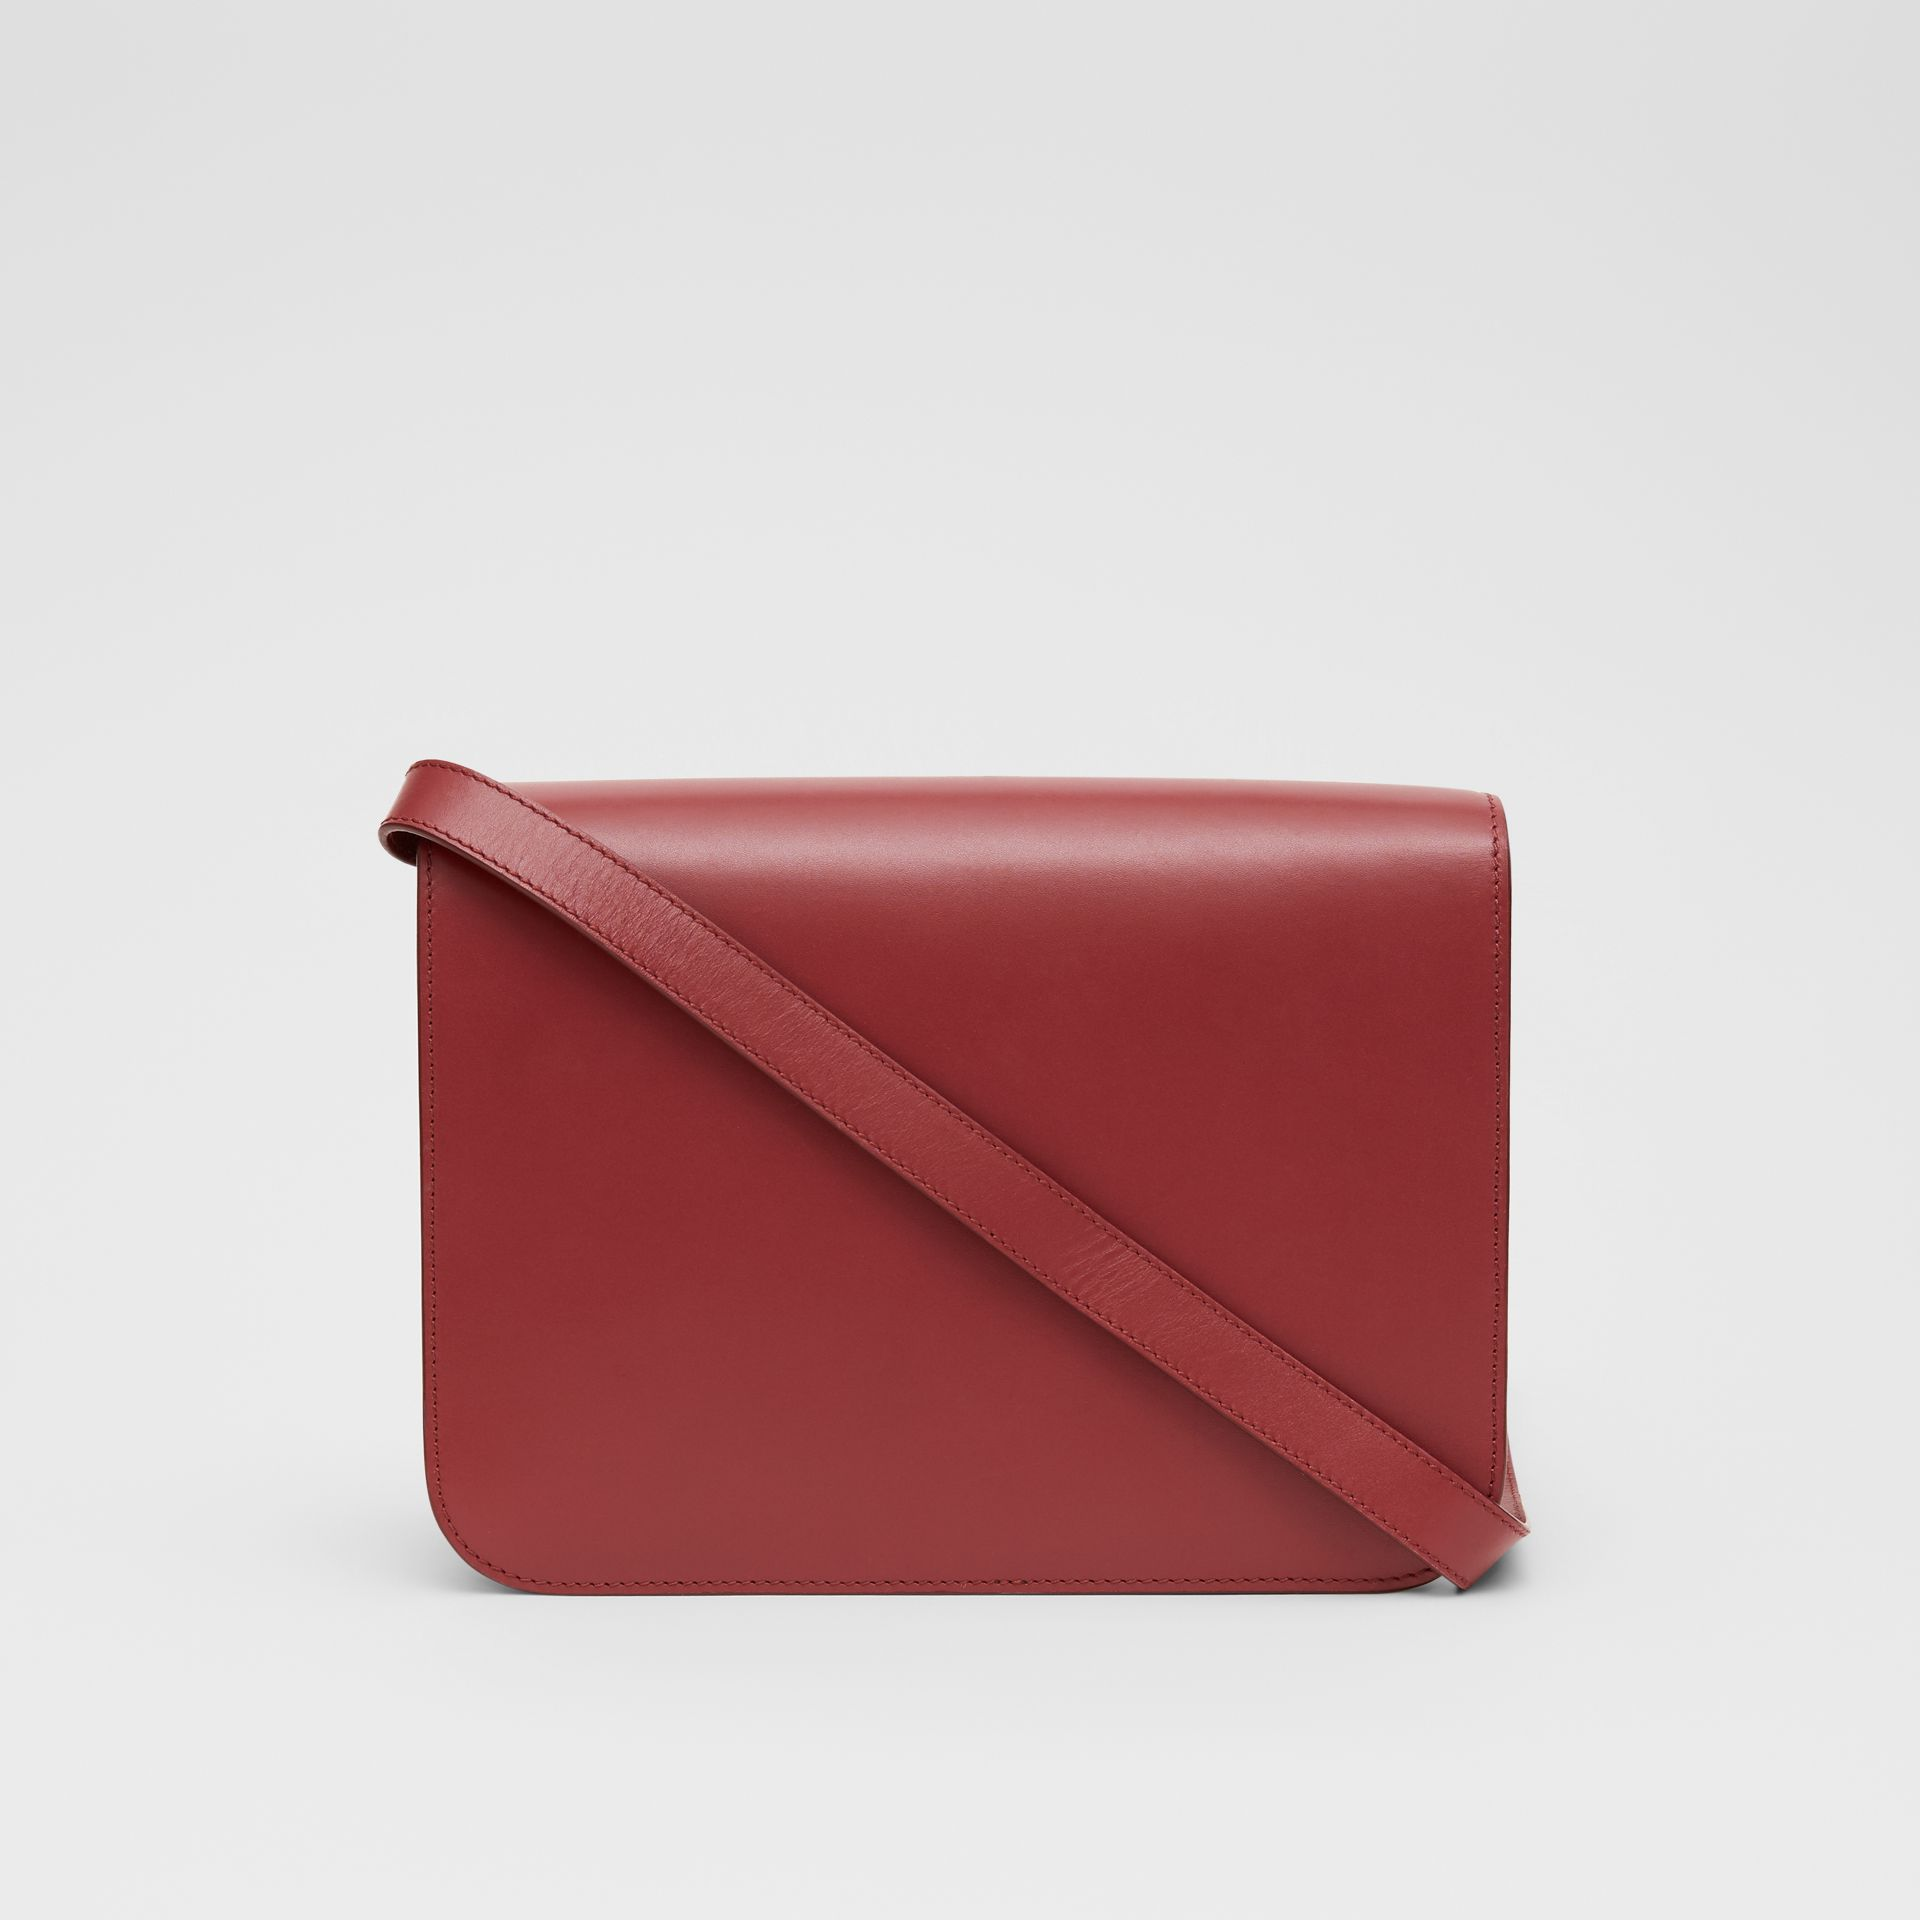 Medium Leather TB Bag in Crimson - Women | Burberry United Kingdom - gallery image 7